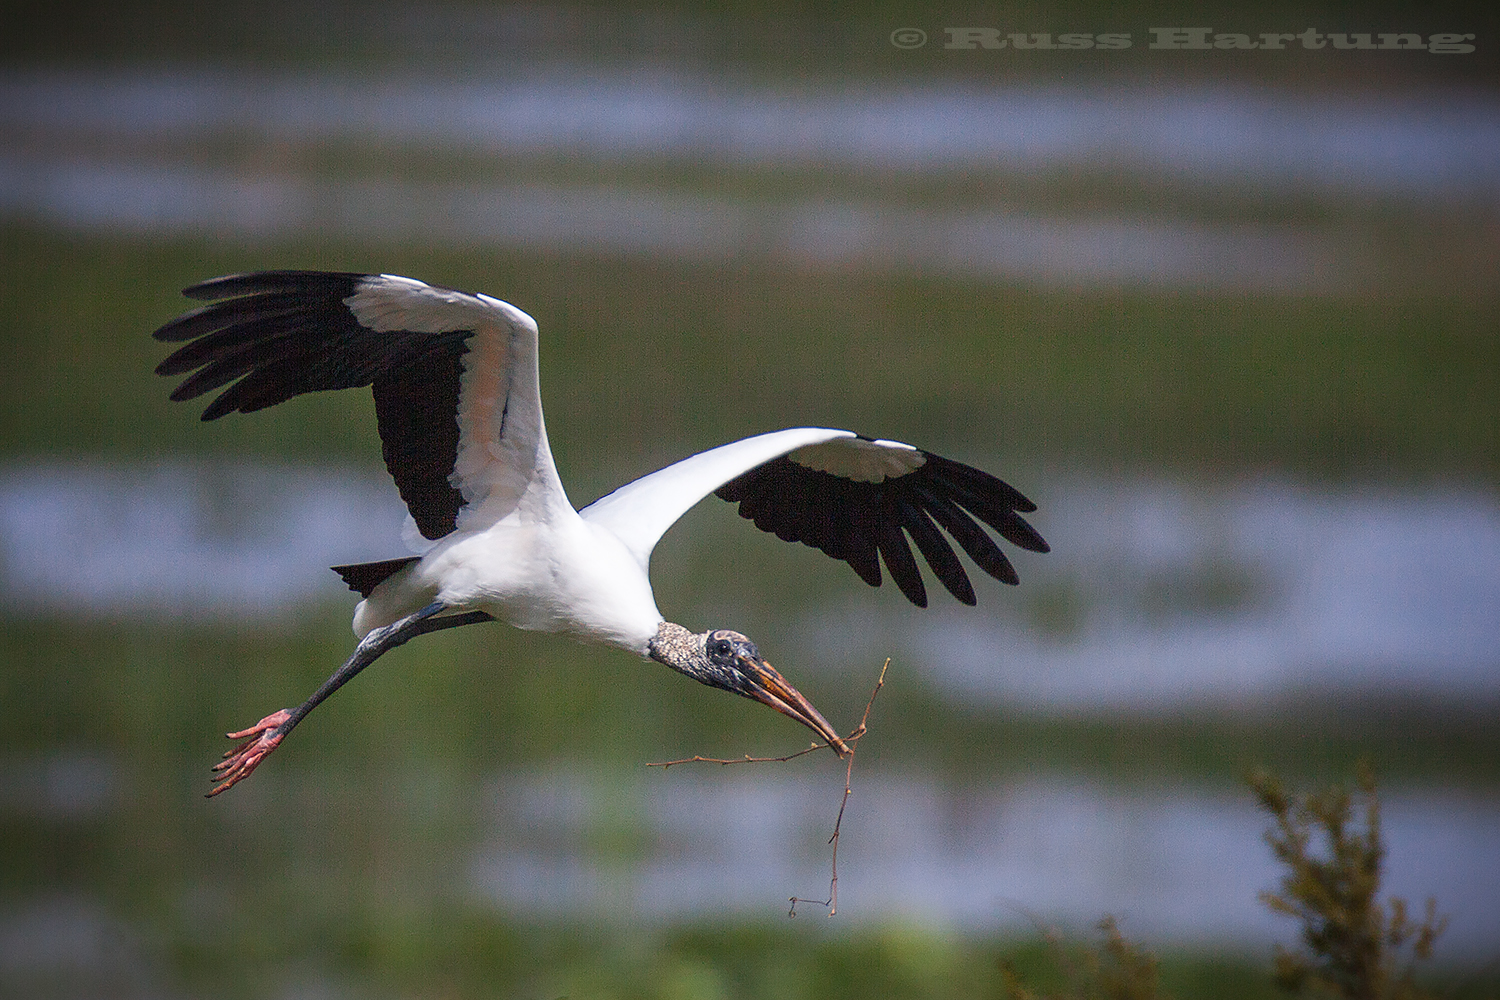 A Wood Stork bringing twigs back to finish construction of the nest in the Orlando Wetlands Park.